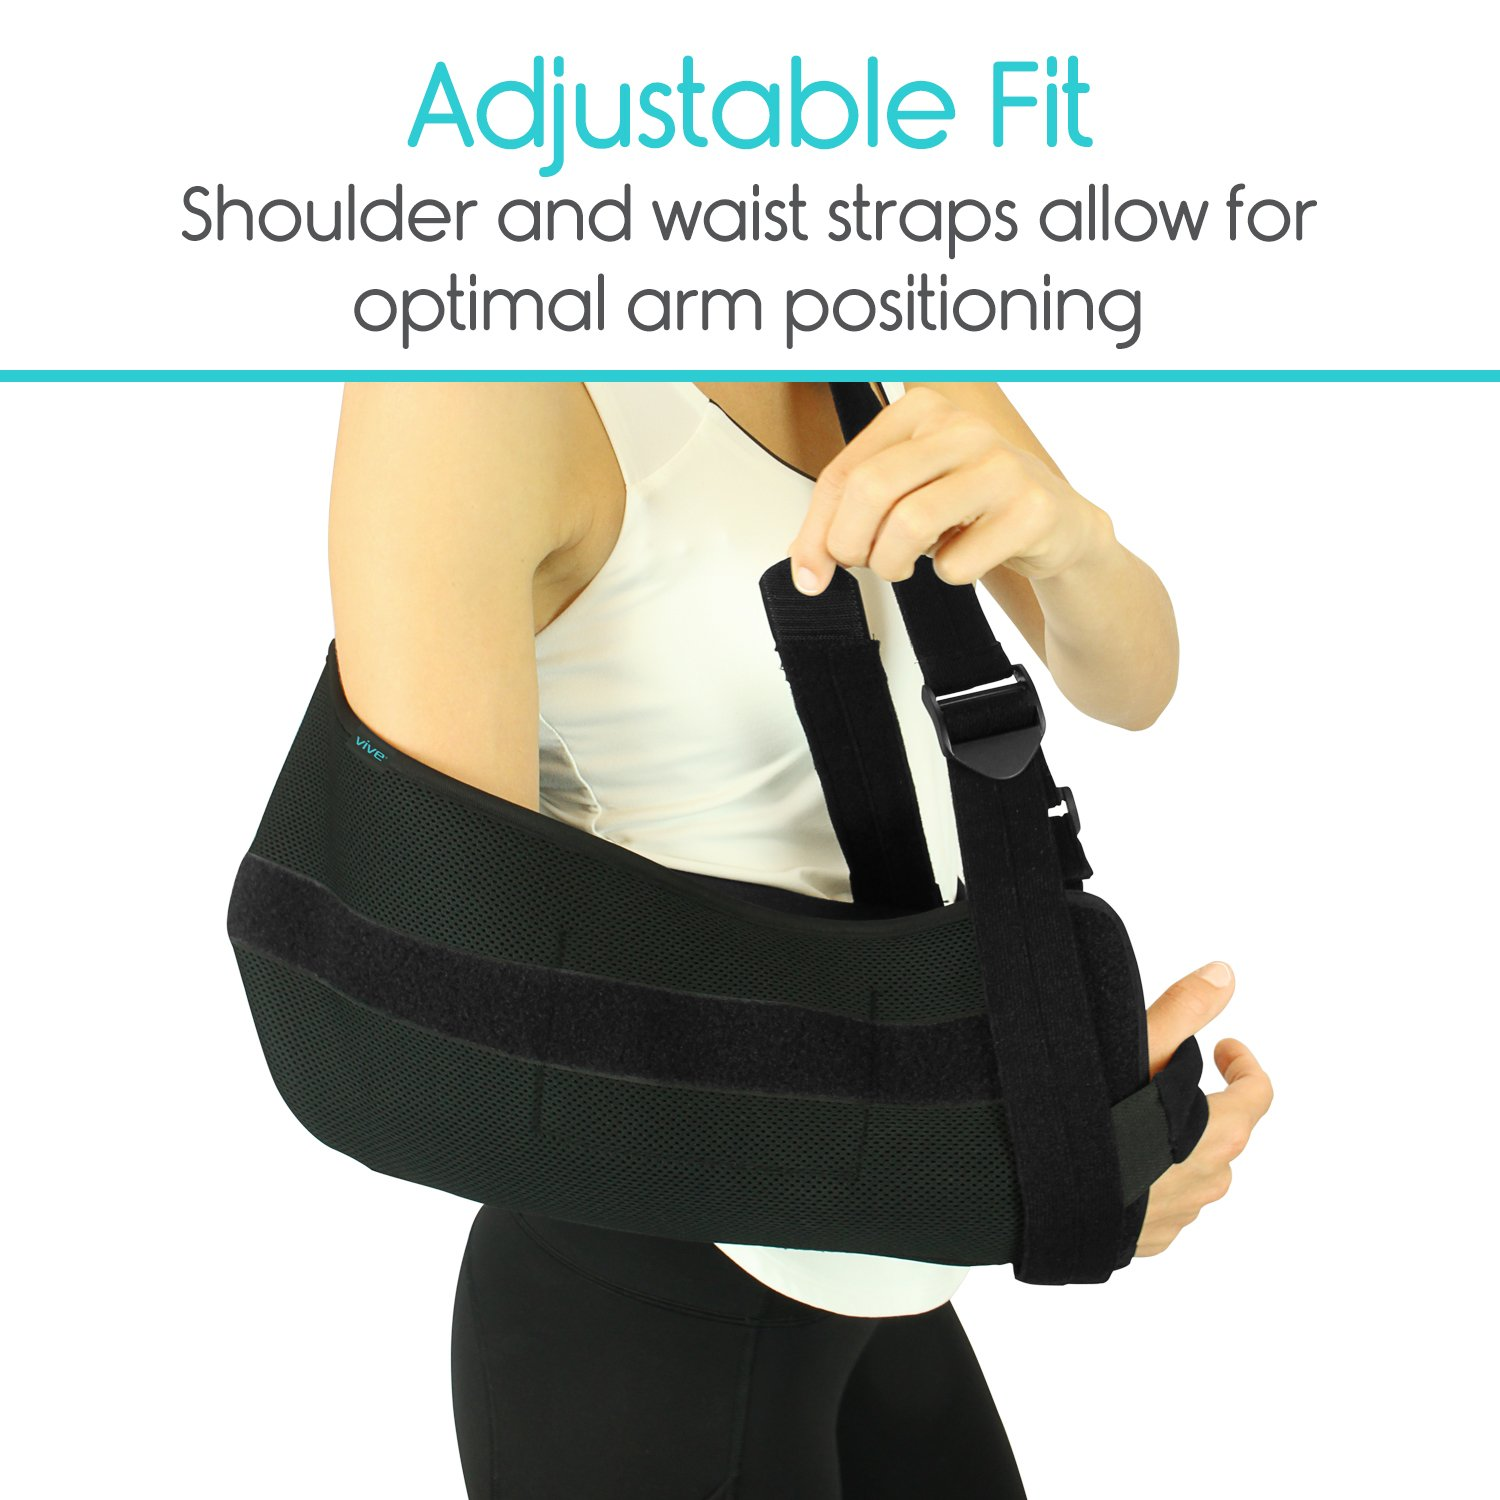 Vive Shoulder Sling - Abduction Immobilizer for Injury Support - Pain Relief Arm Pillow for Rotator Cuff, Sublexion, Surgery, Dislocated, Broken Arm - Brace Includes Pocket Strap, Stress Ball, Wedge by VIVE (Image #6)